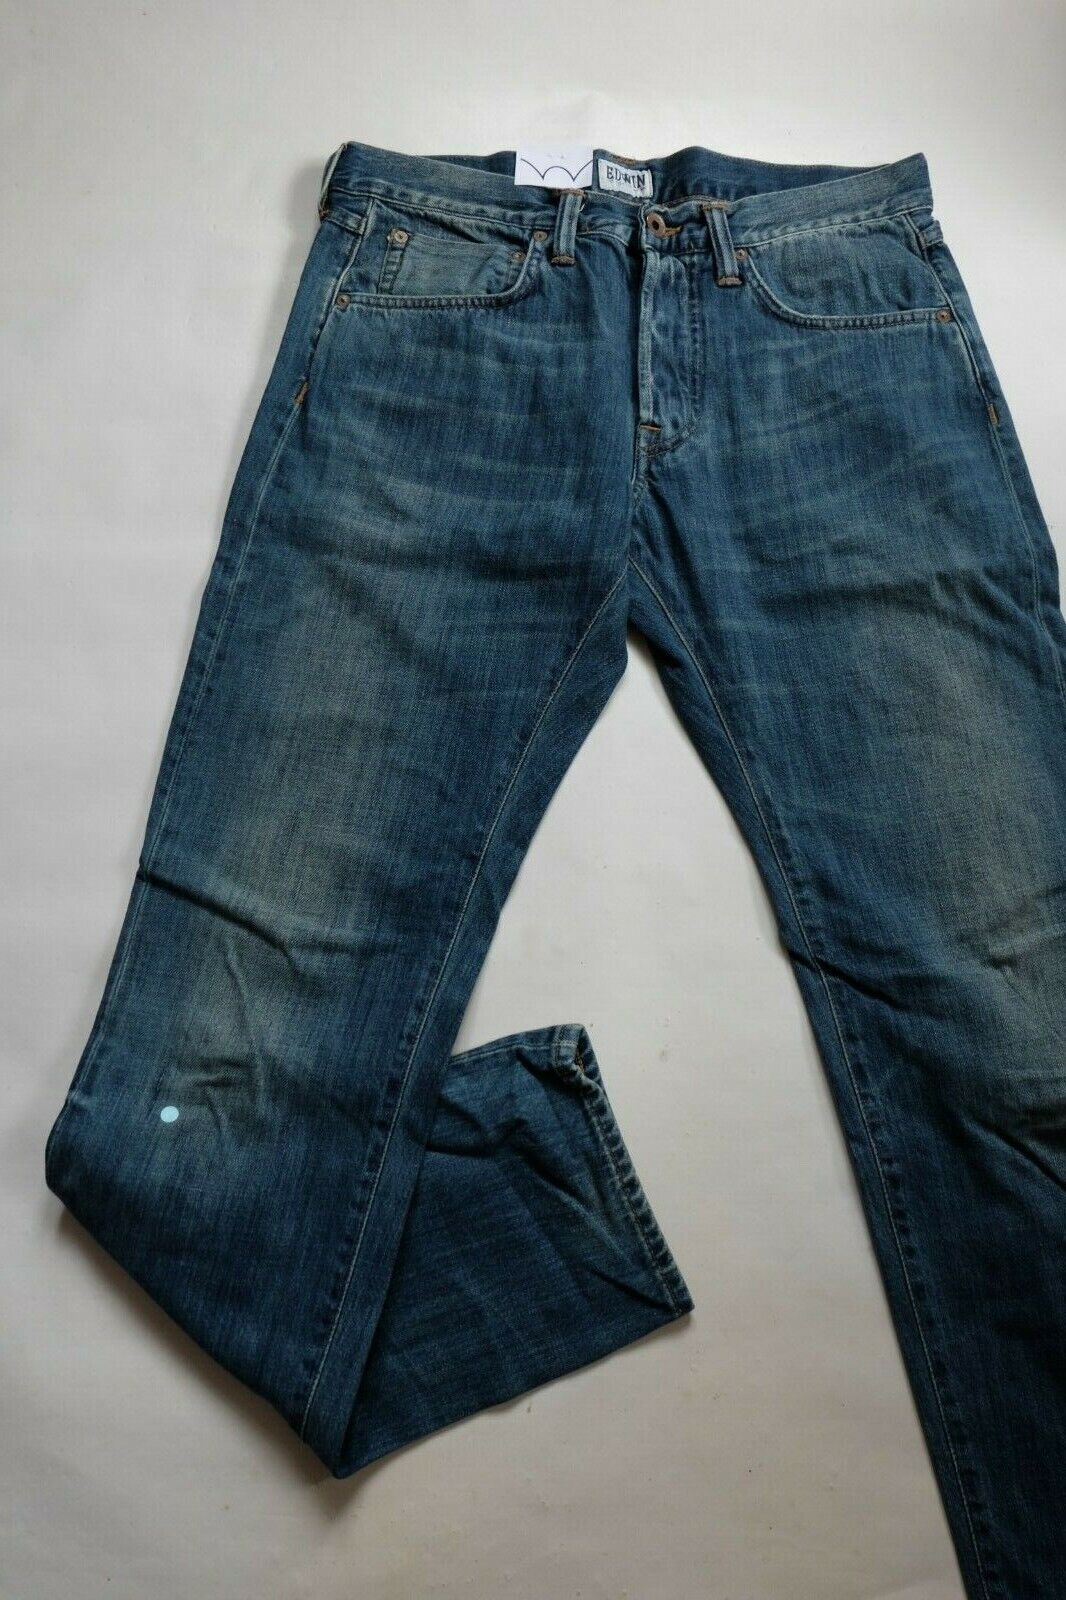 JEANS EDWIN HOMME ED 55 RELAXED (White Listed Indigo Mid Sifted Used)   W31 L32